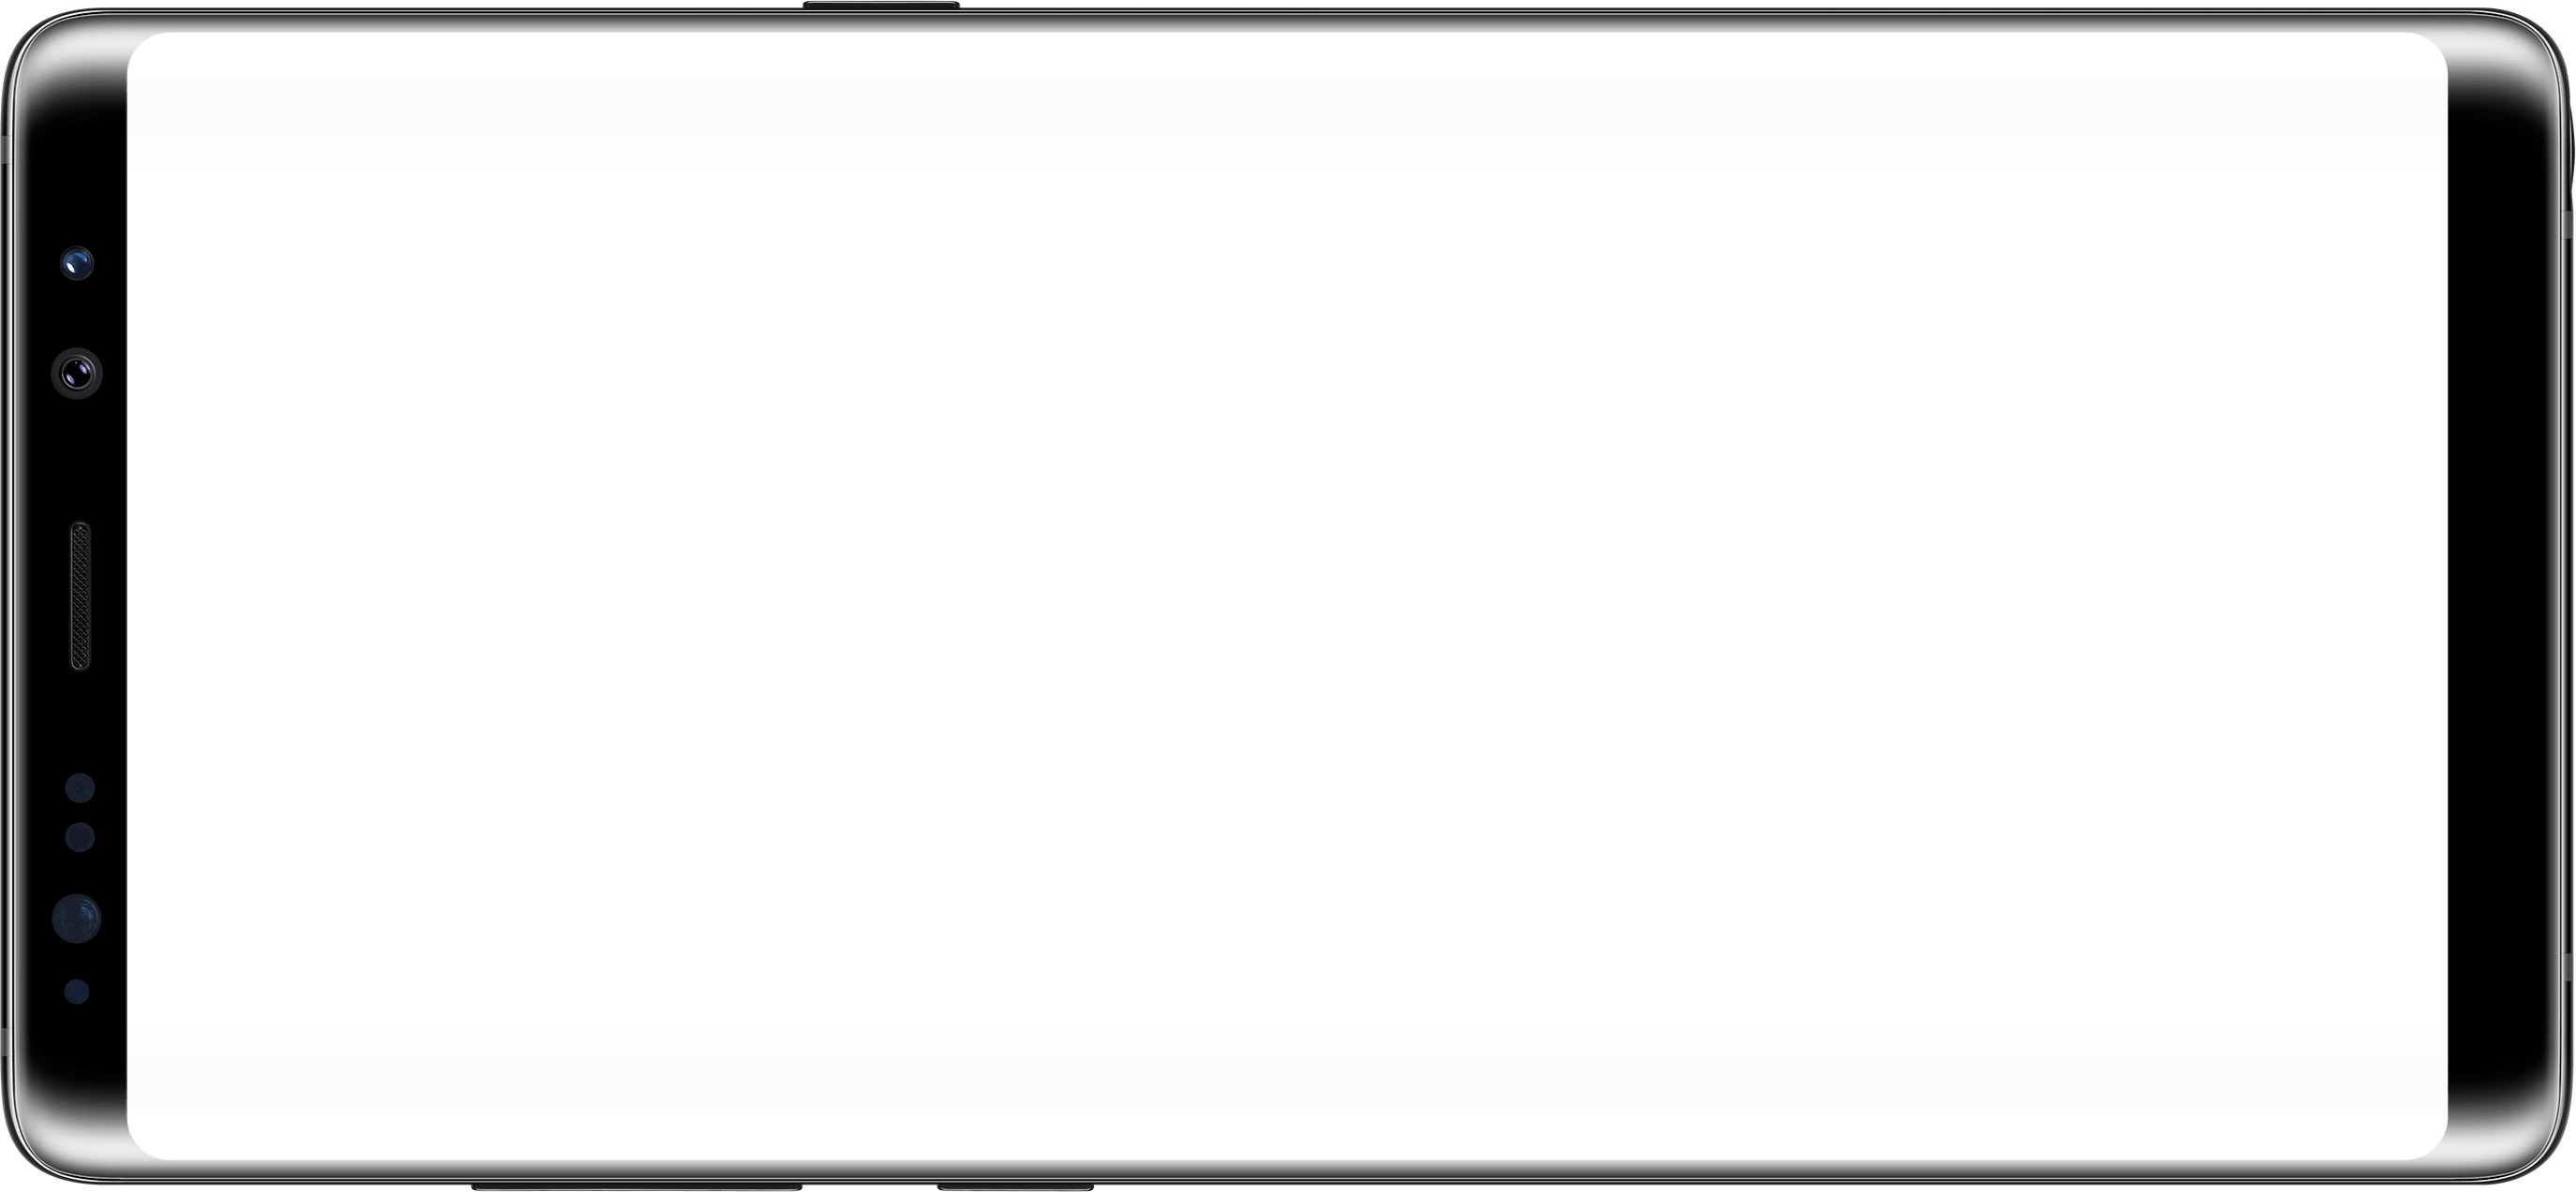 Galaxy note 8 png. Samsung the official site